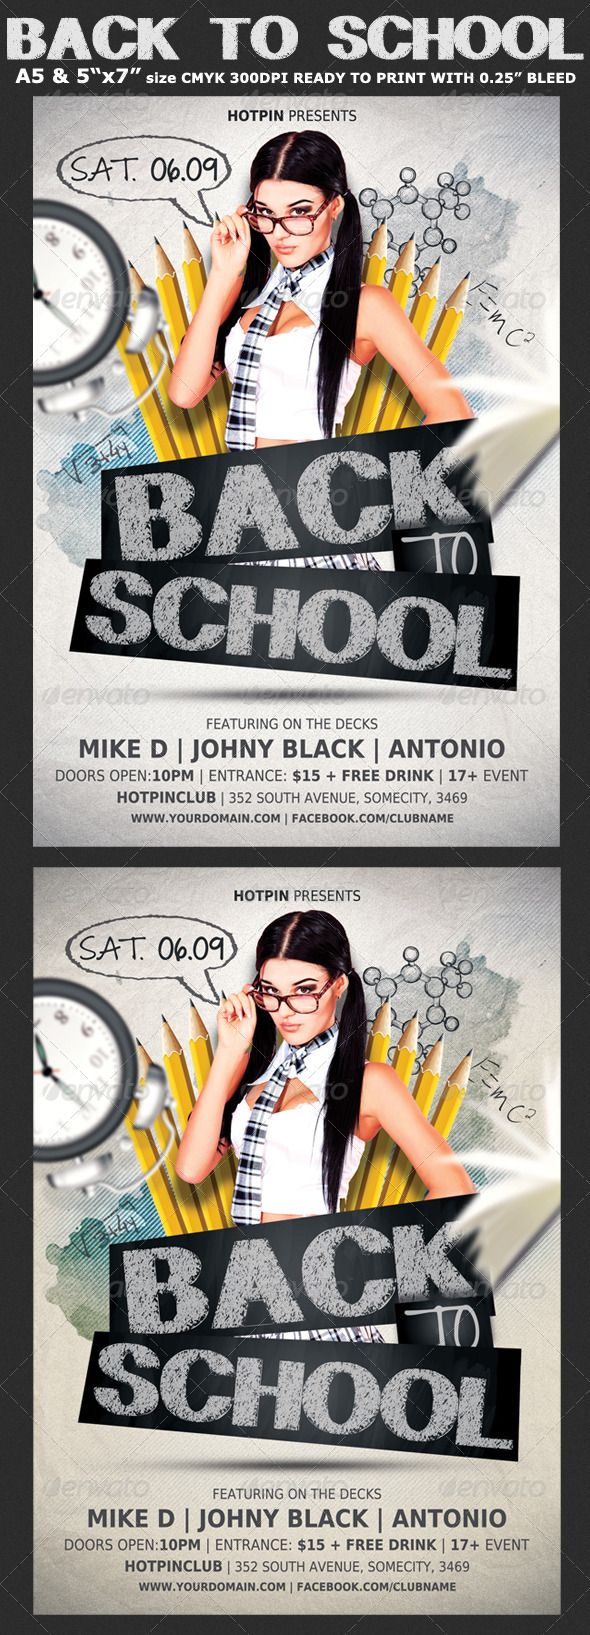 11 best college party flyers images on Pinterest | Party flyer ...